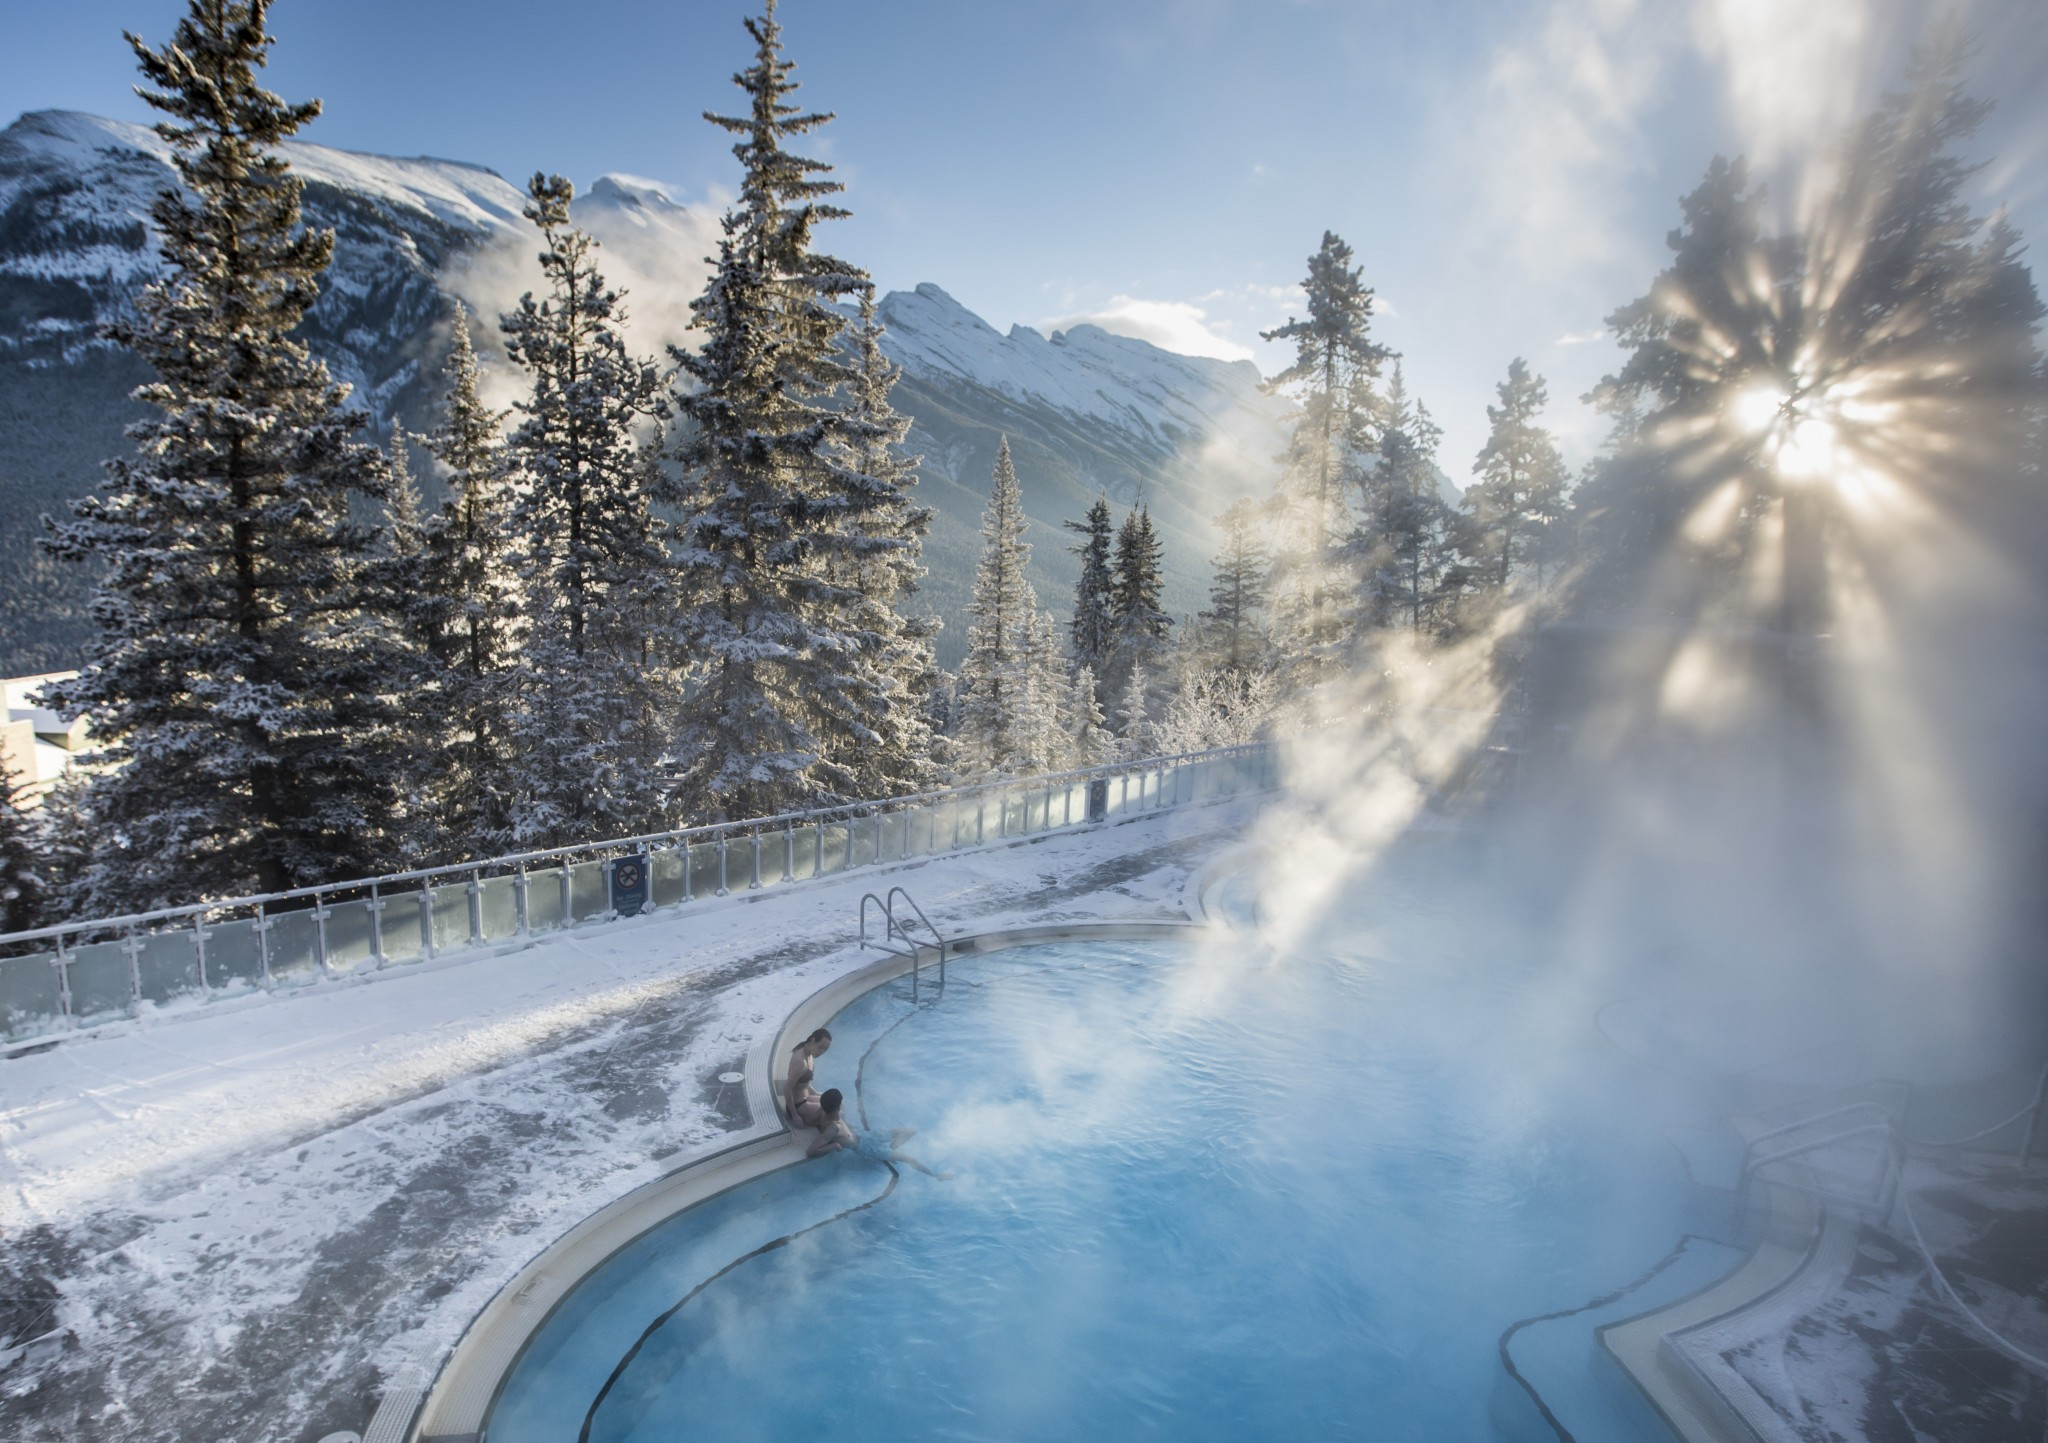 Winter_Banff_Upper_Hot_Springs_2016_Noel_Hendrickson_Horizontal-8-2048x1443.jpg